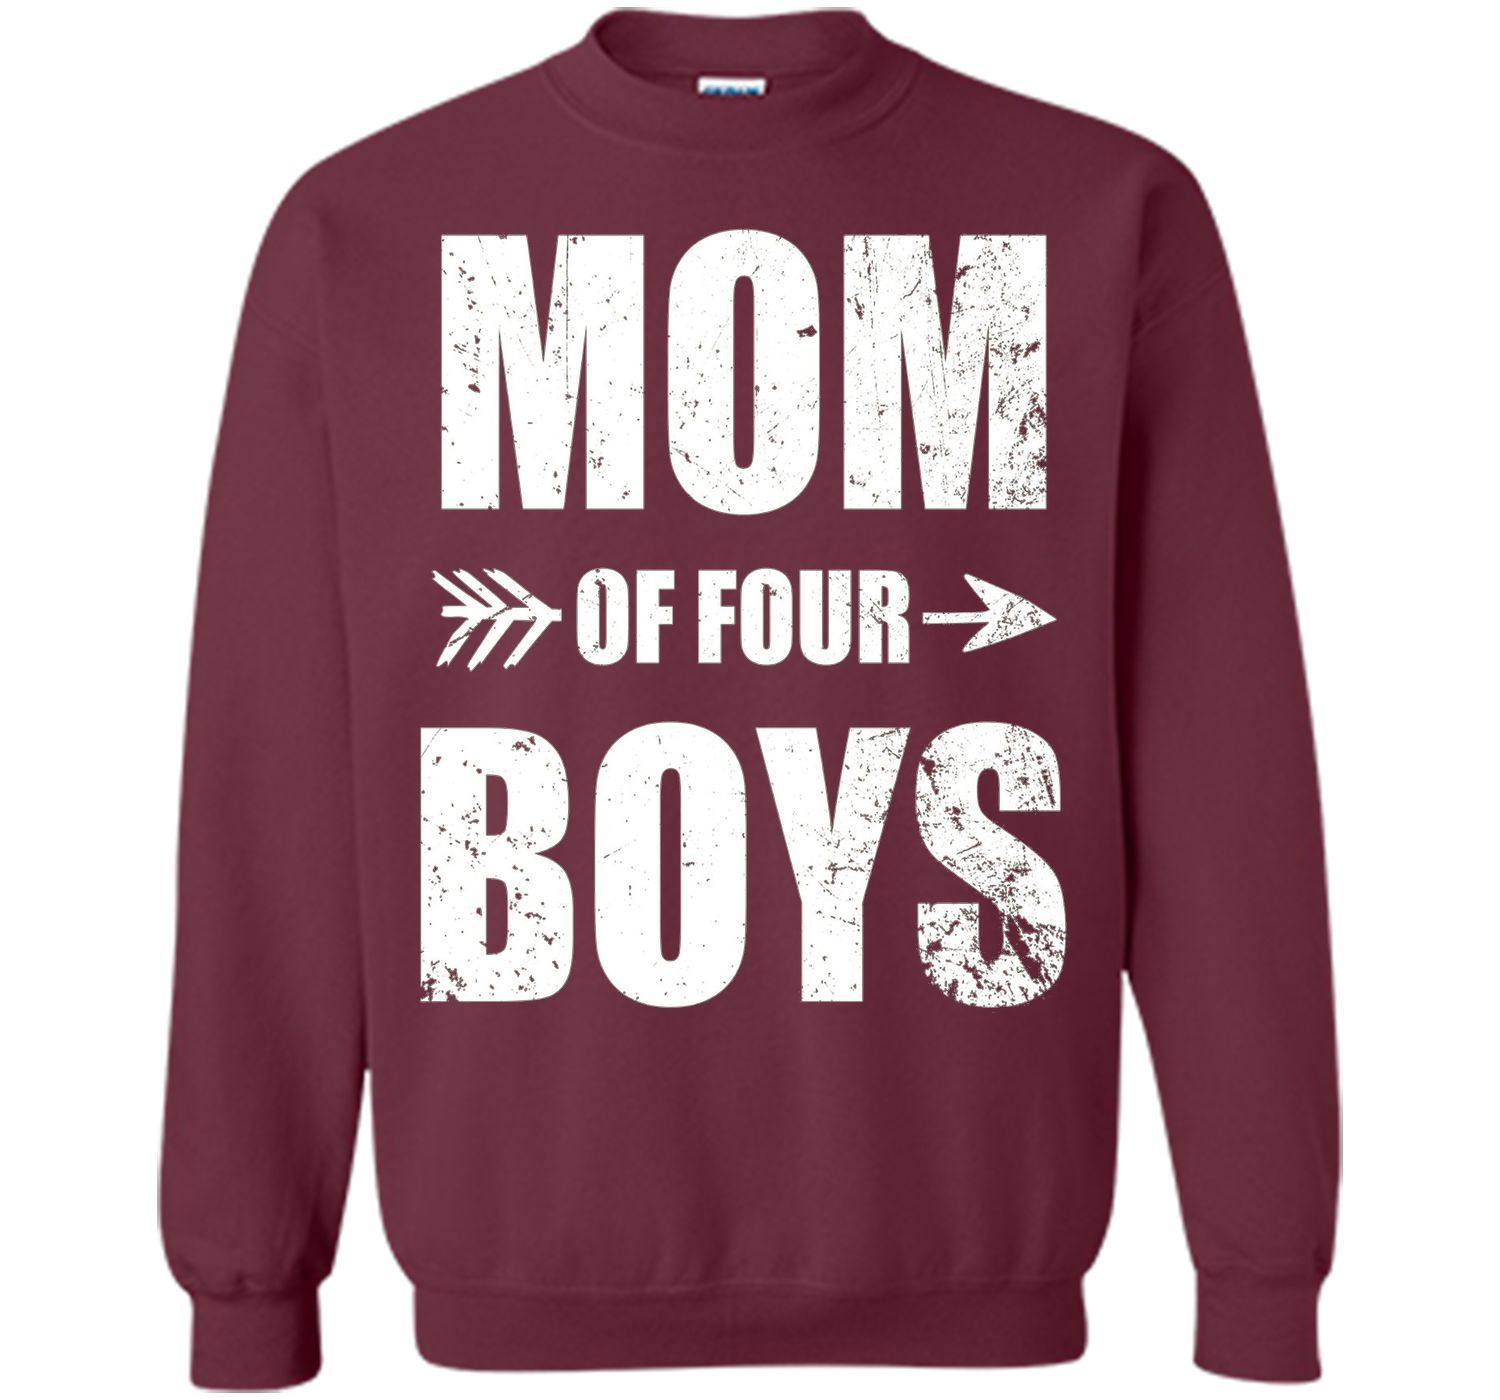 Proud Mom Of Four Boys T-Shirt. T-Shirt For Mom Of Four Boys - mother's day